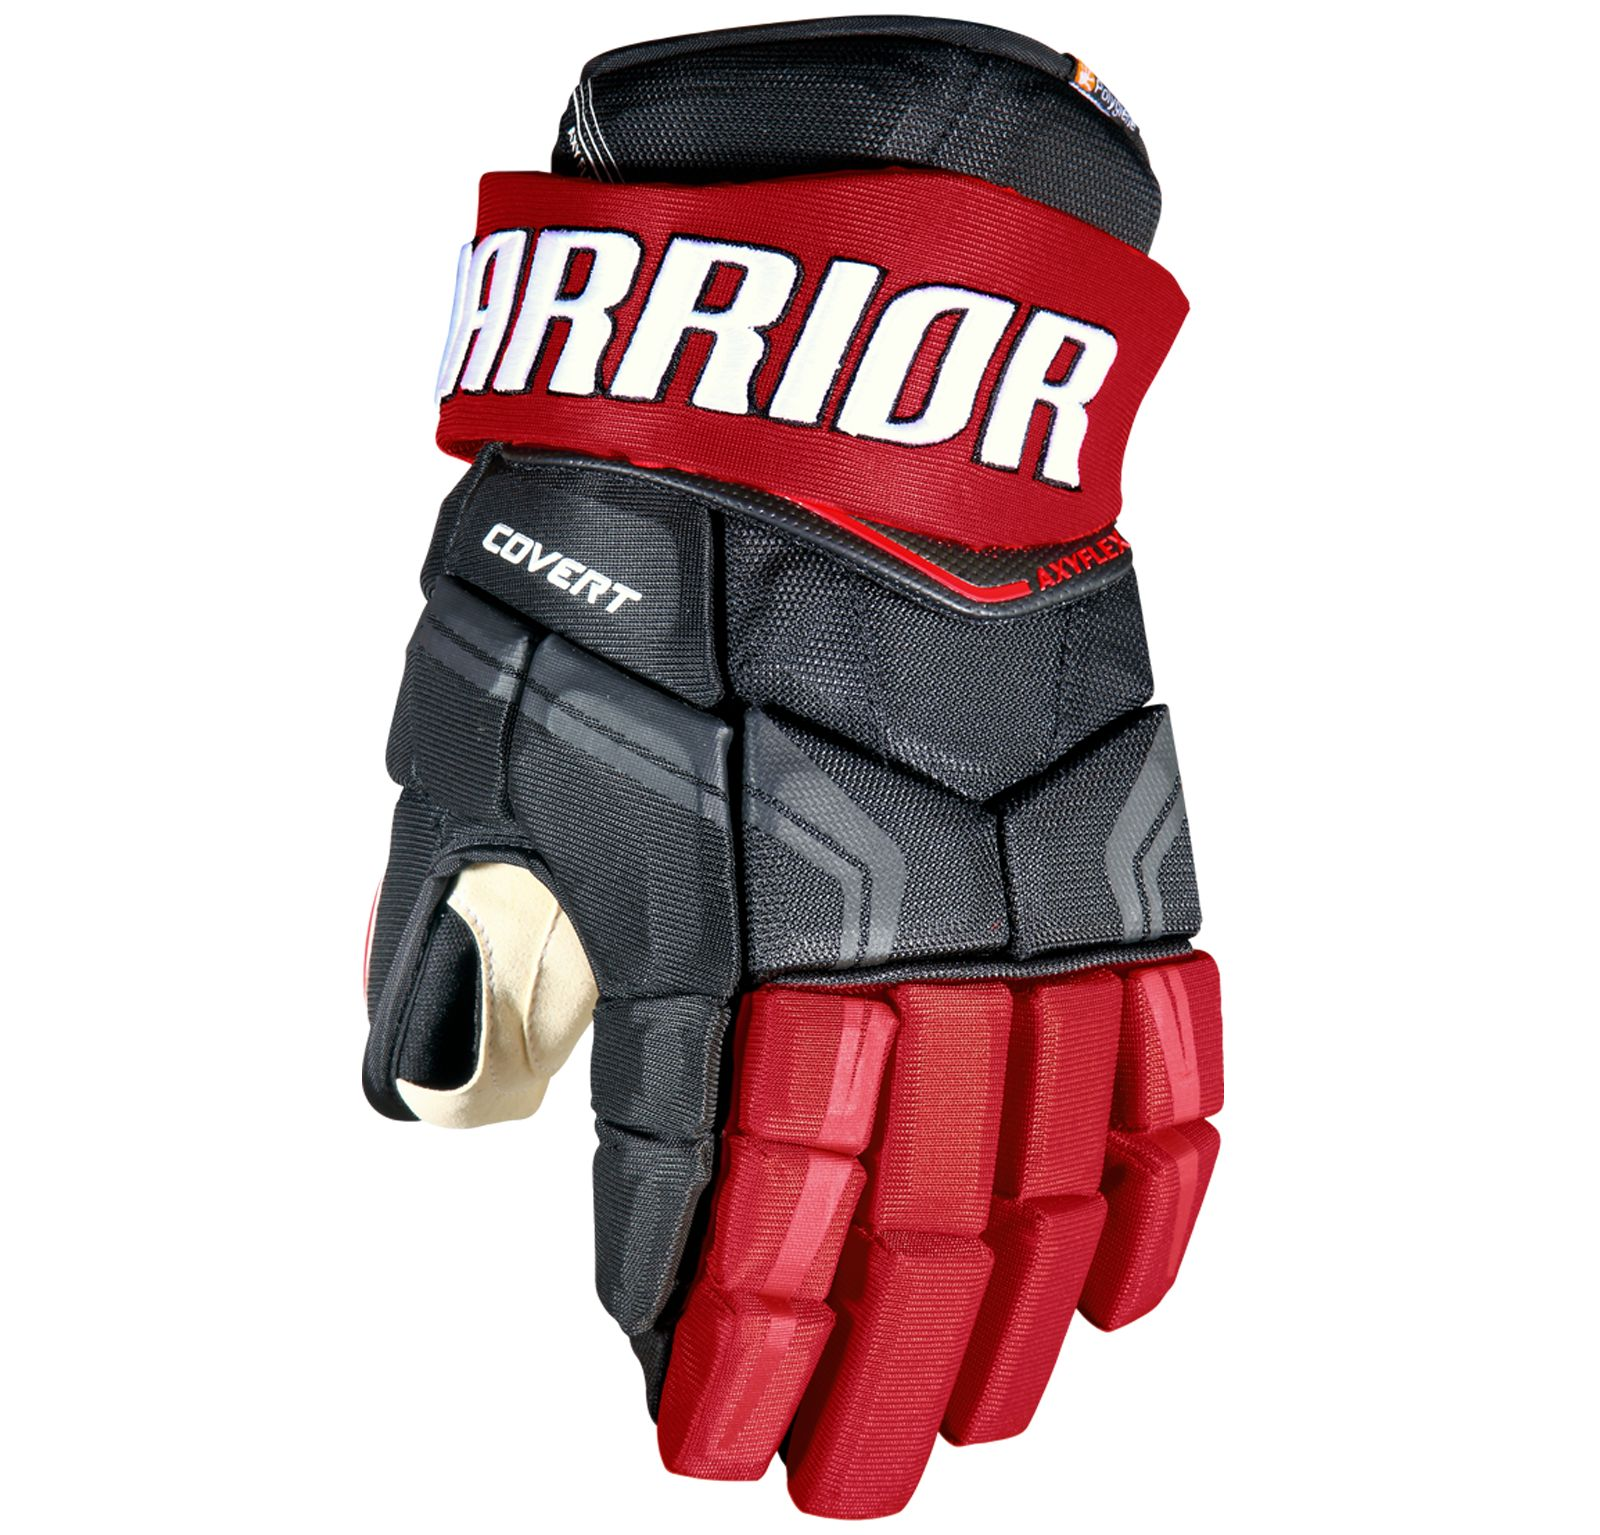 4b048ee3a30 Warrior - QRE Pro JR Glove - -